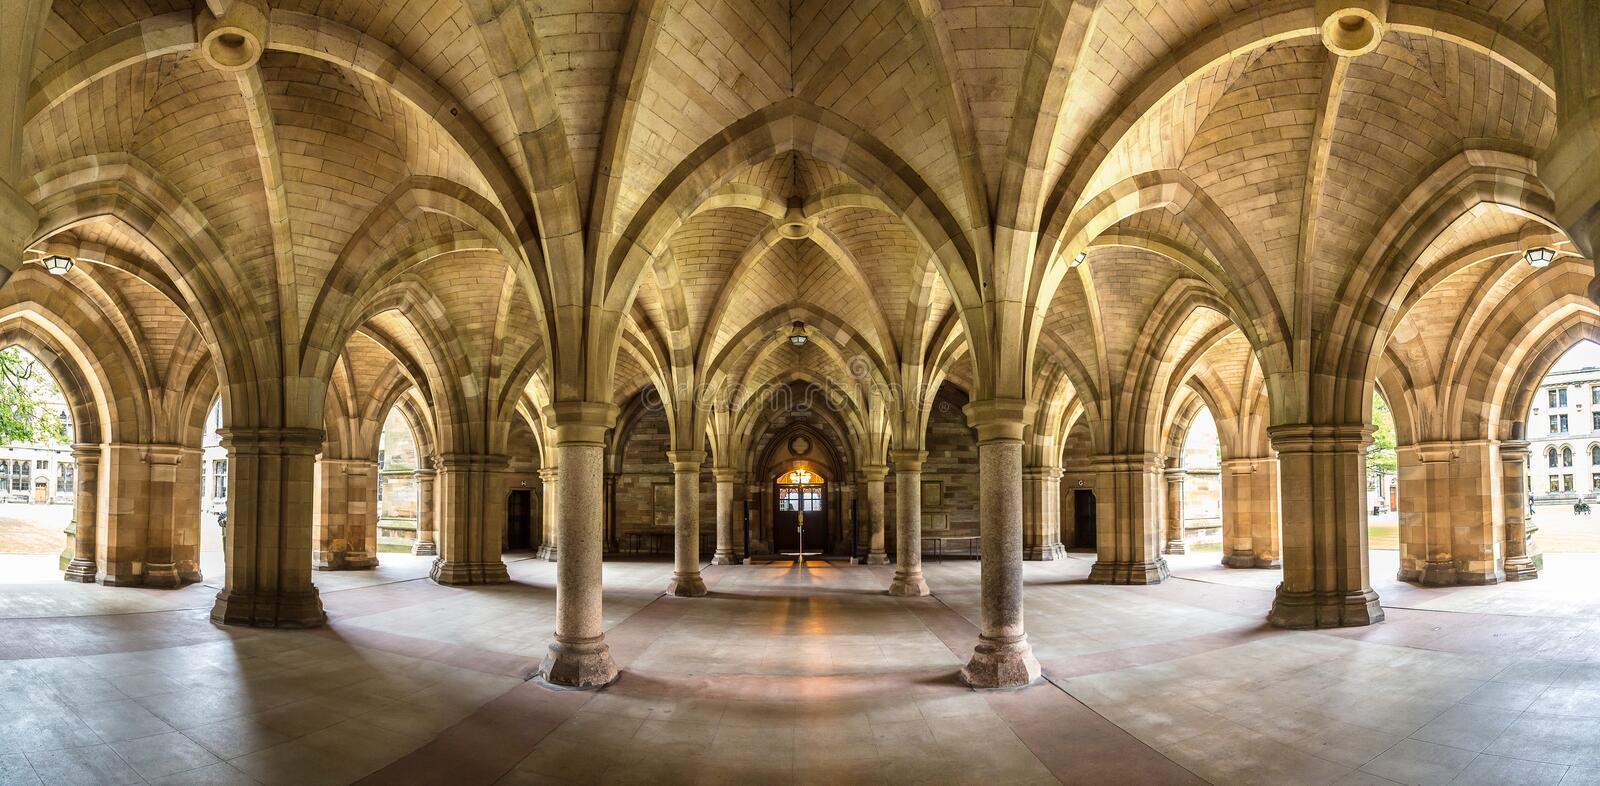 University of Glasgow Cloisters, Scotland royalty free stock images